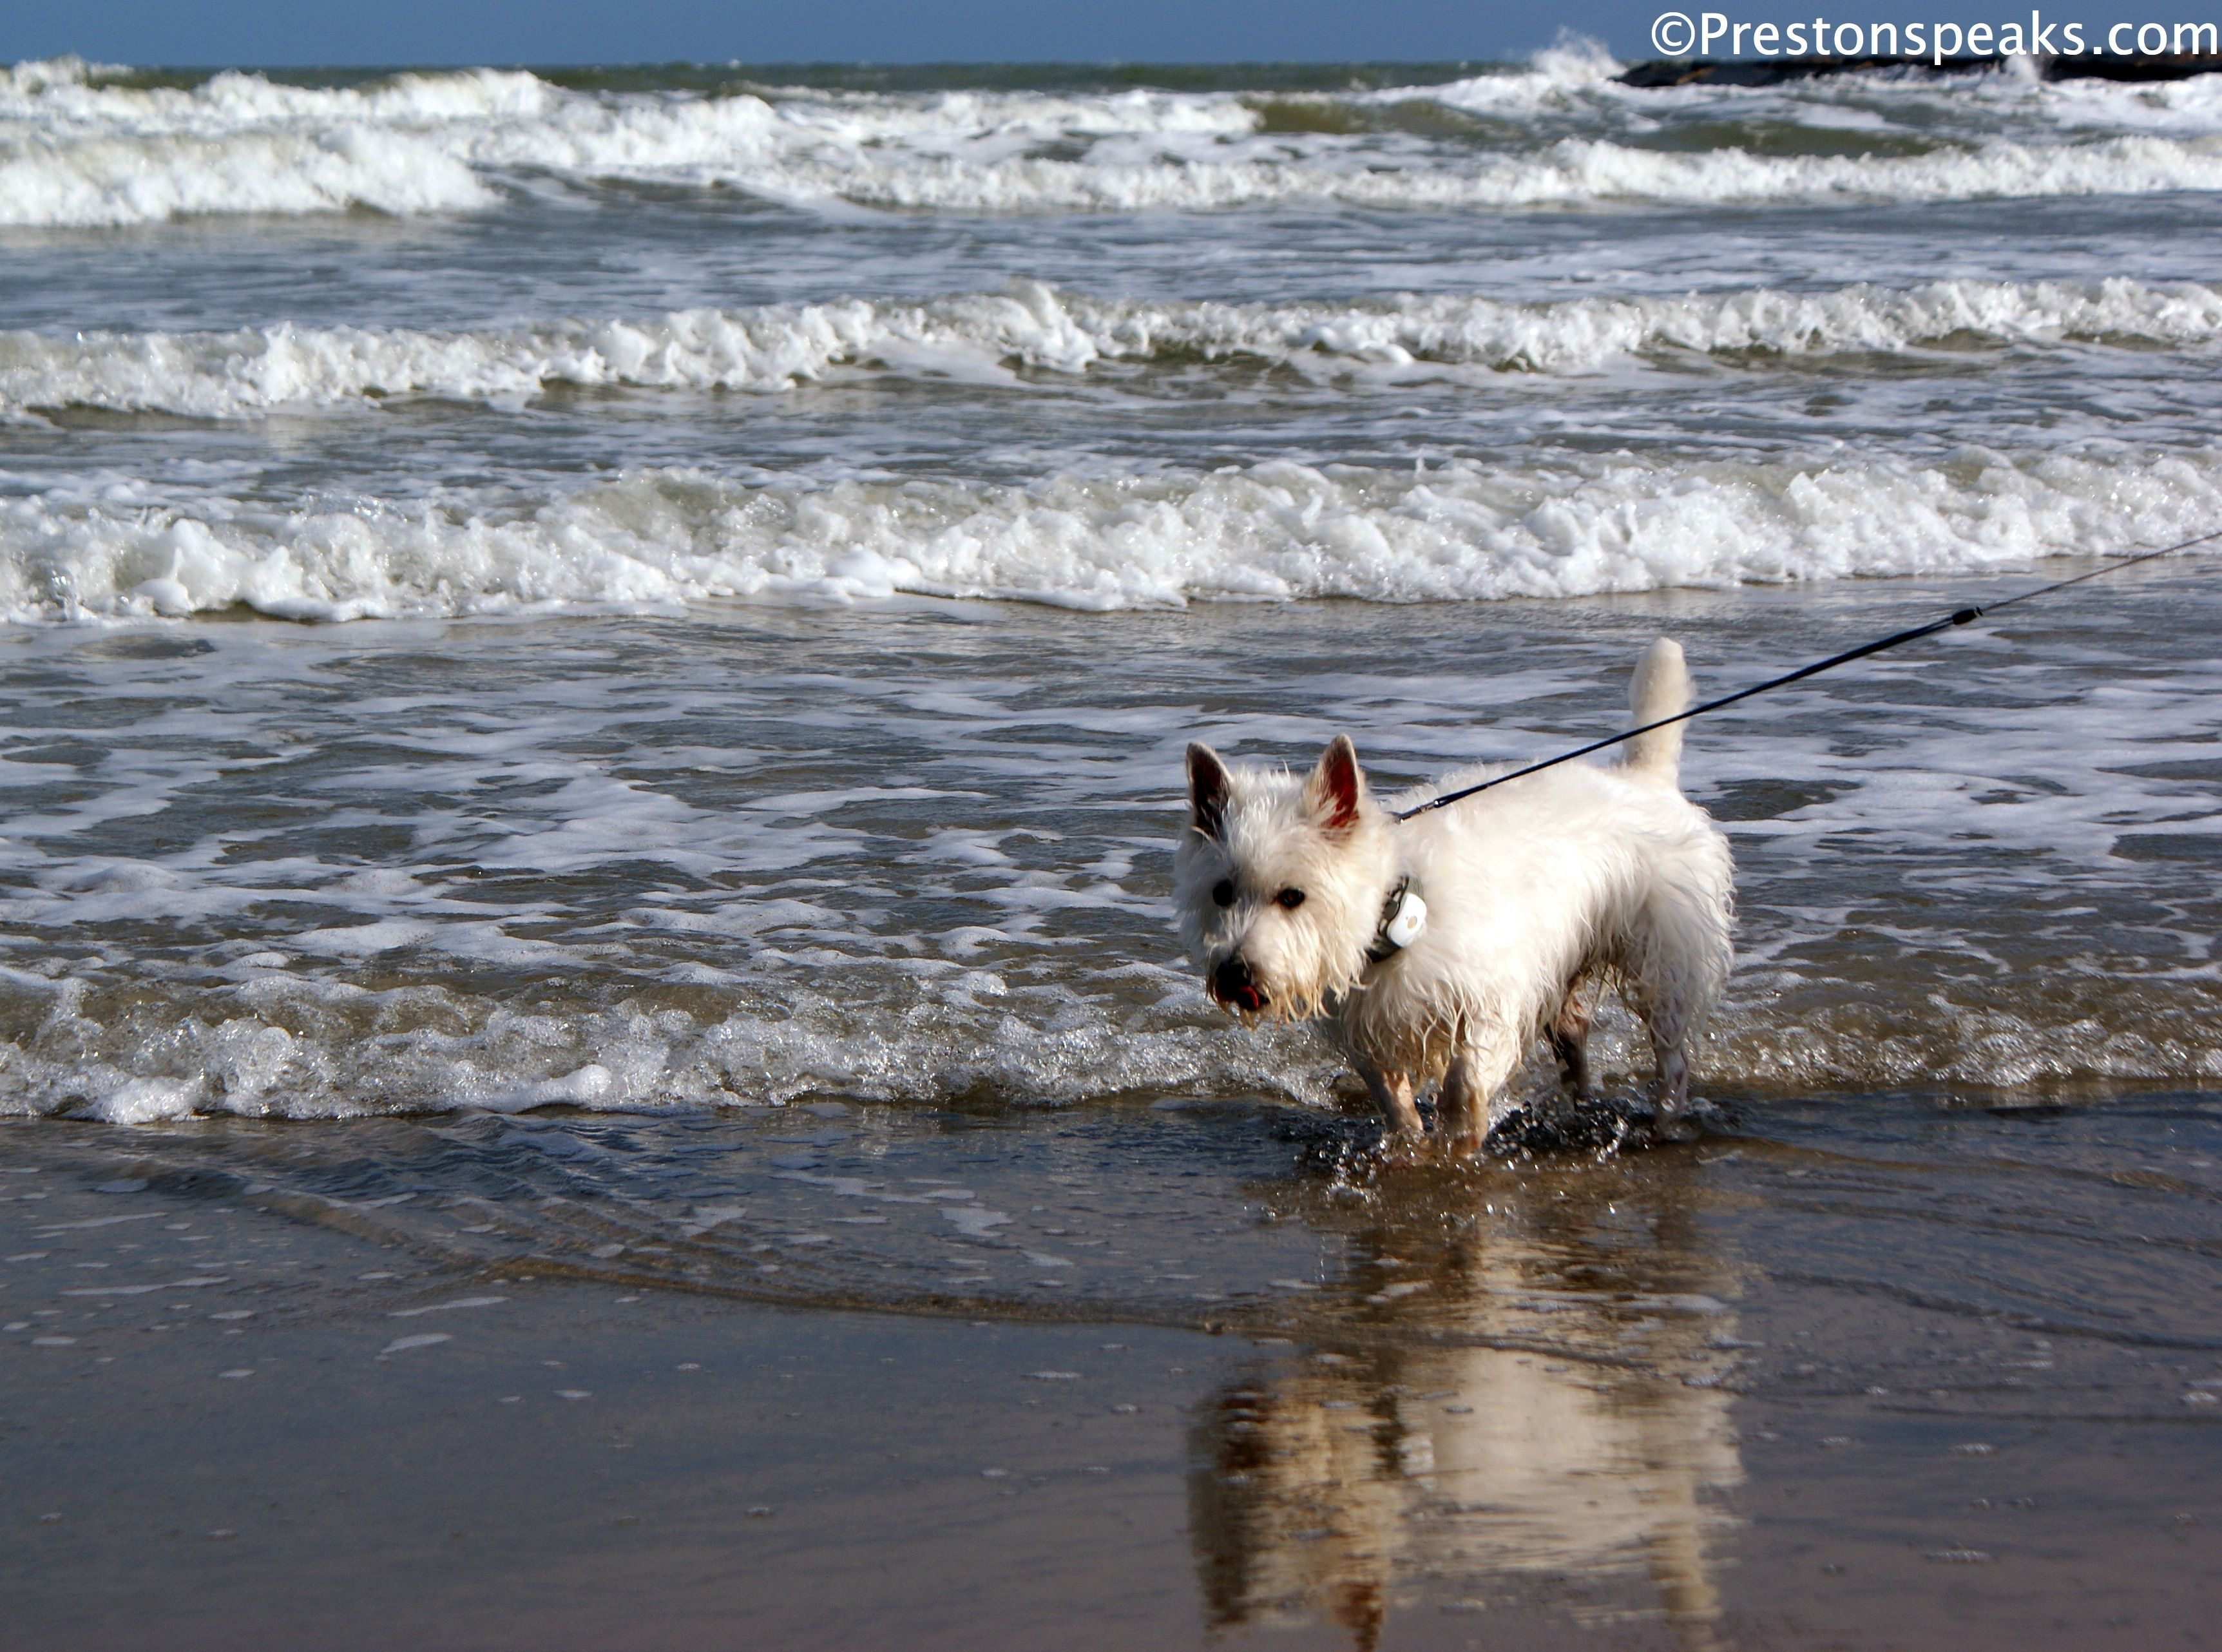 Preston From Prestonspeaks Com Enjoys The Day At Pet Friendly Galveston Beach Texas West Highland Terrier Pet Travel White Dogs